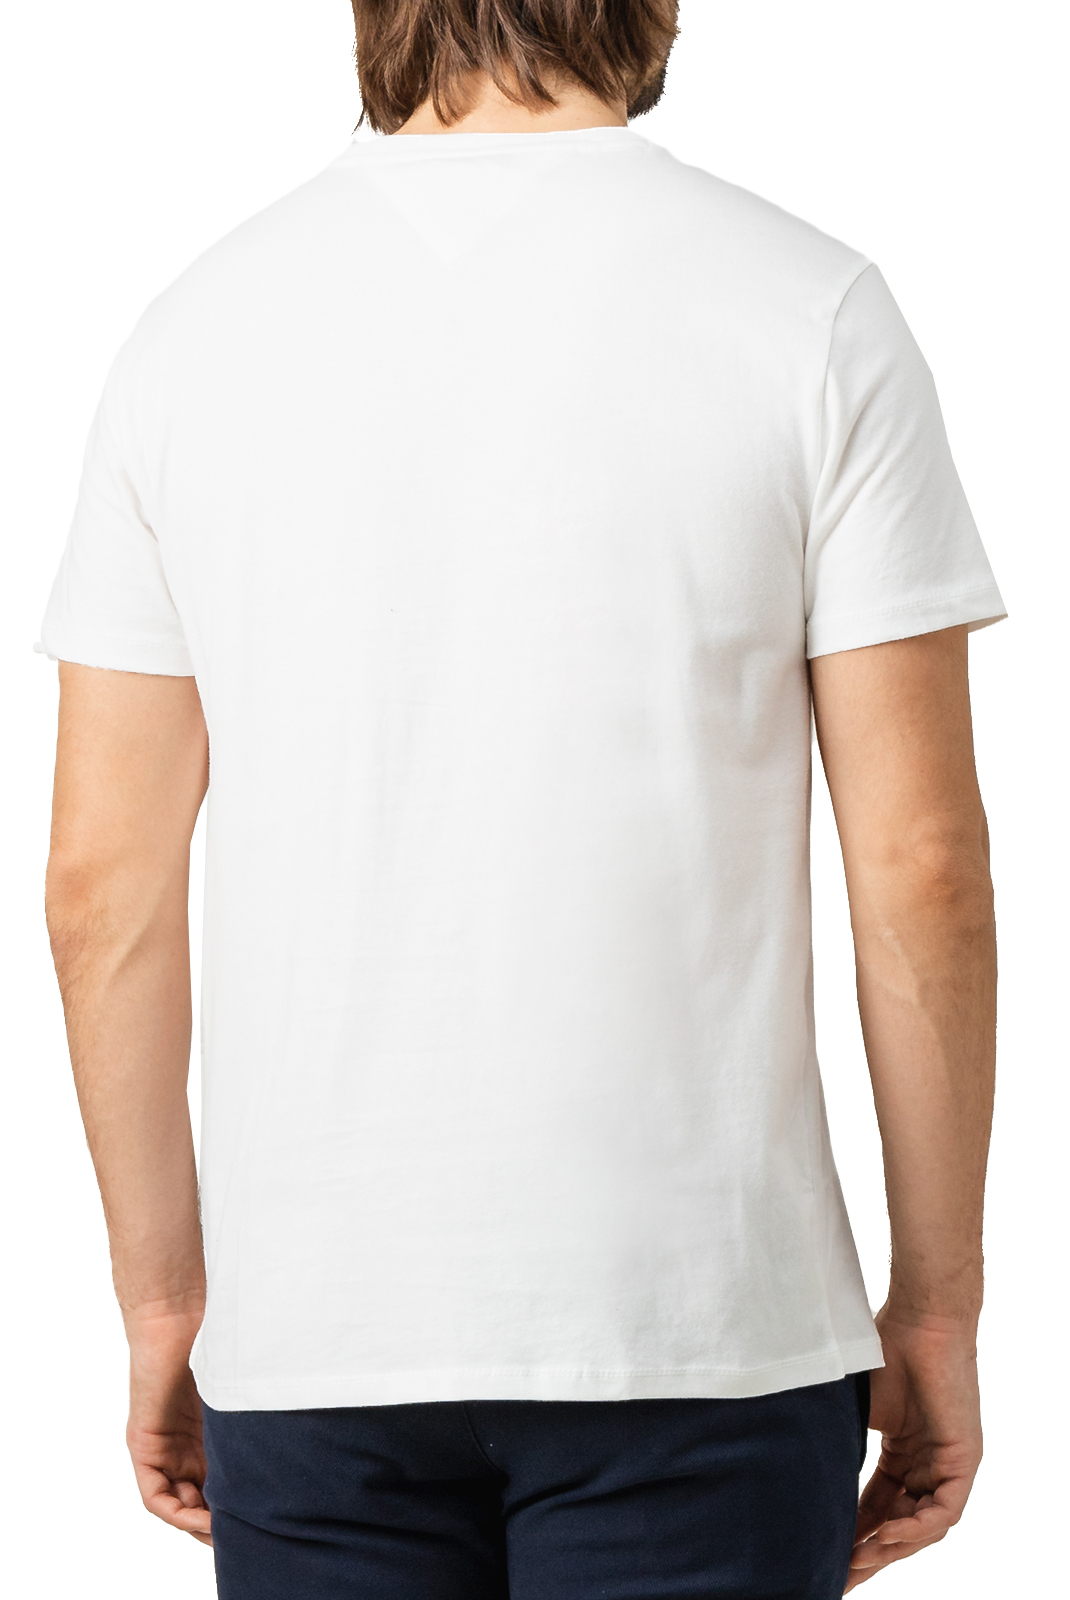 T-S manches courtes  Tommy Jeans DM0DM07472 CHEST YA2 CLASSIC WHITE